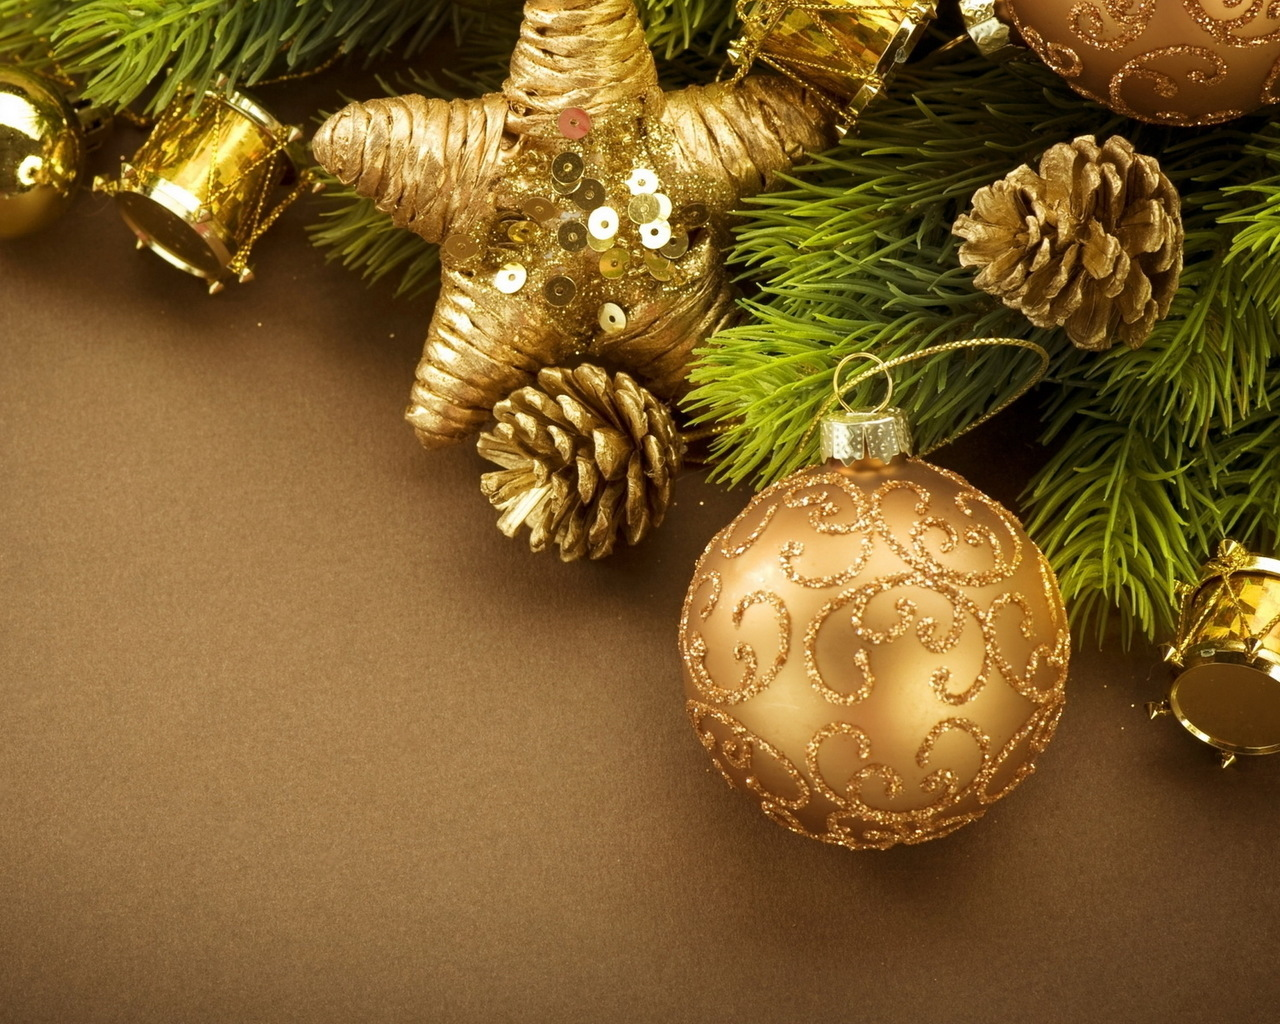 Download mobile wallpaper Christmas, Xmas, Holidays, Background, New Year for free.